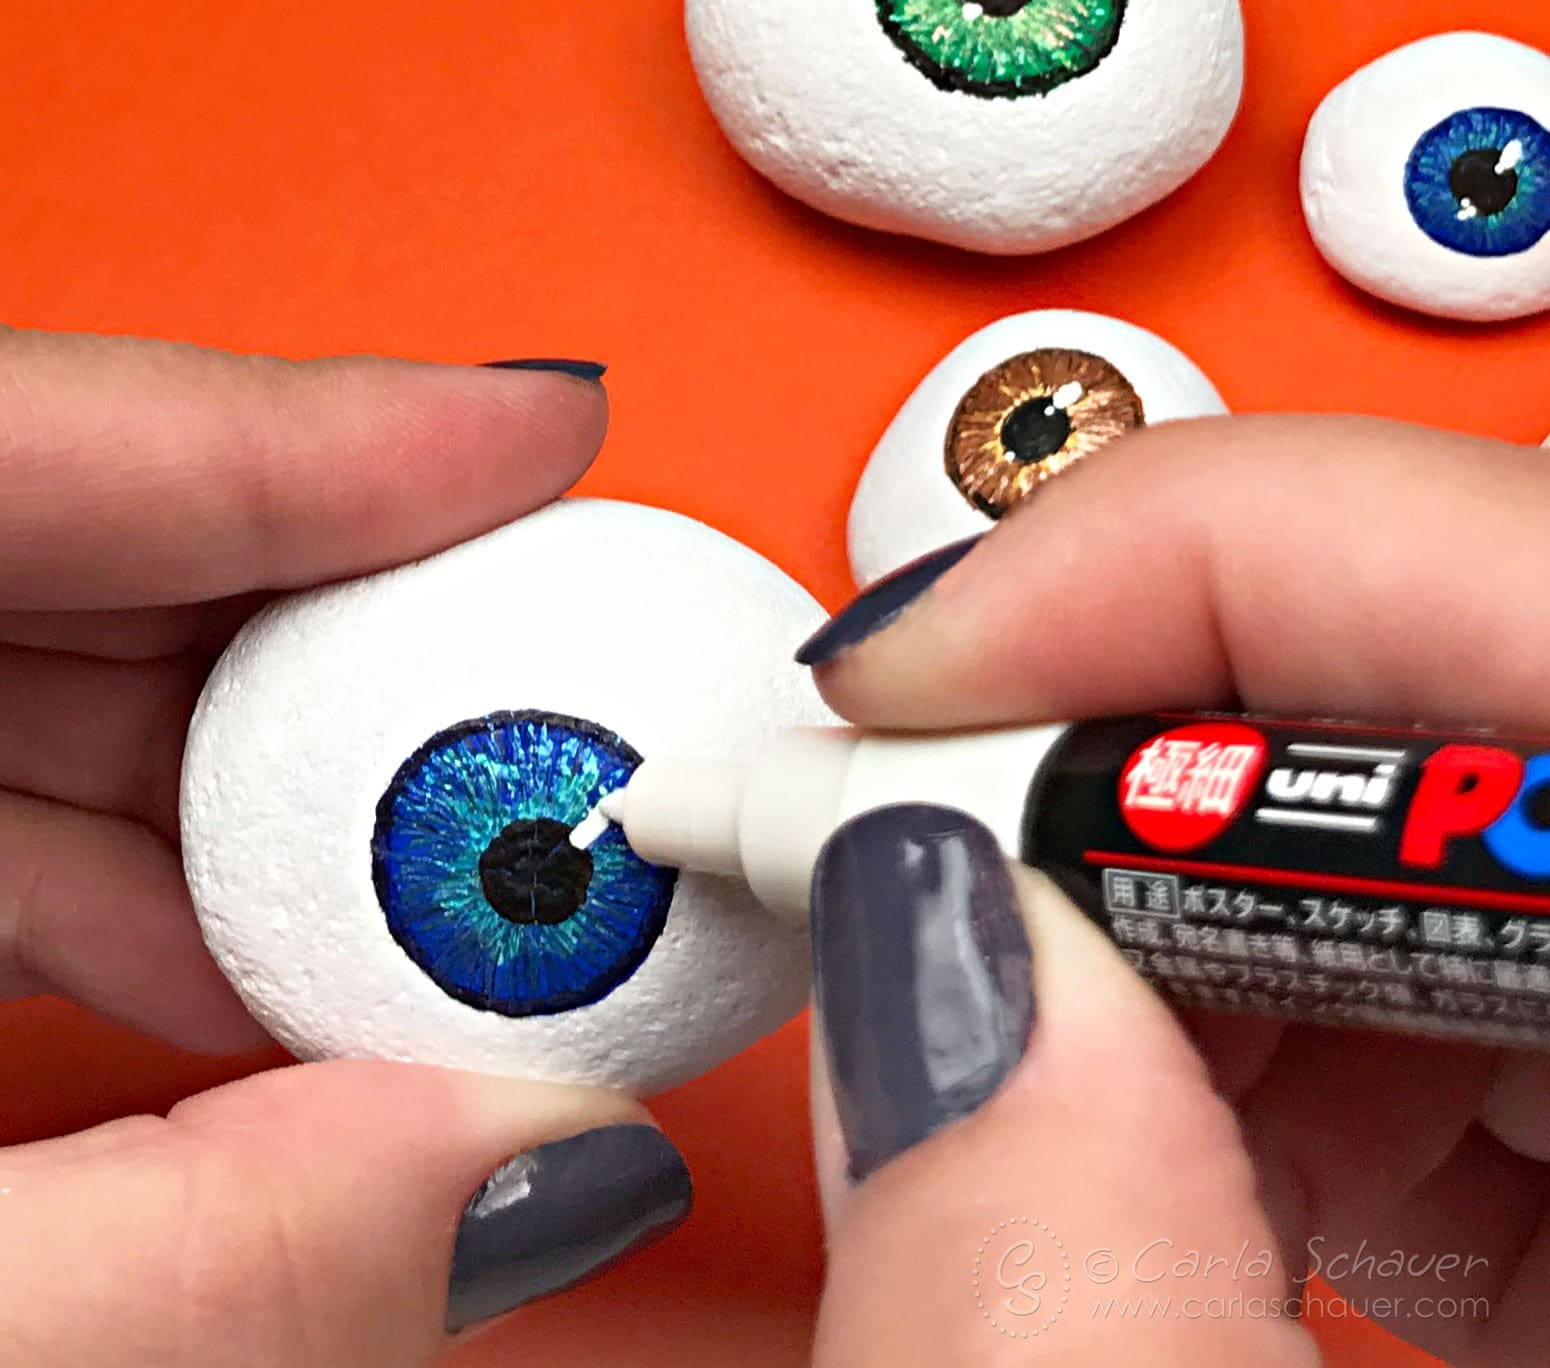 Hand drawing highlight on painted eyeball rock with white paint marker. Orange background